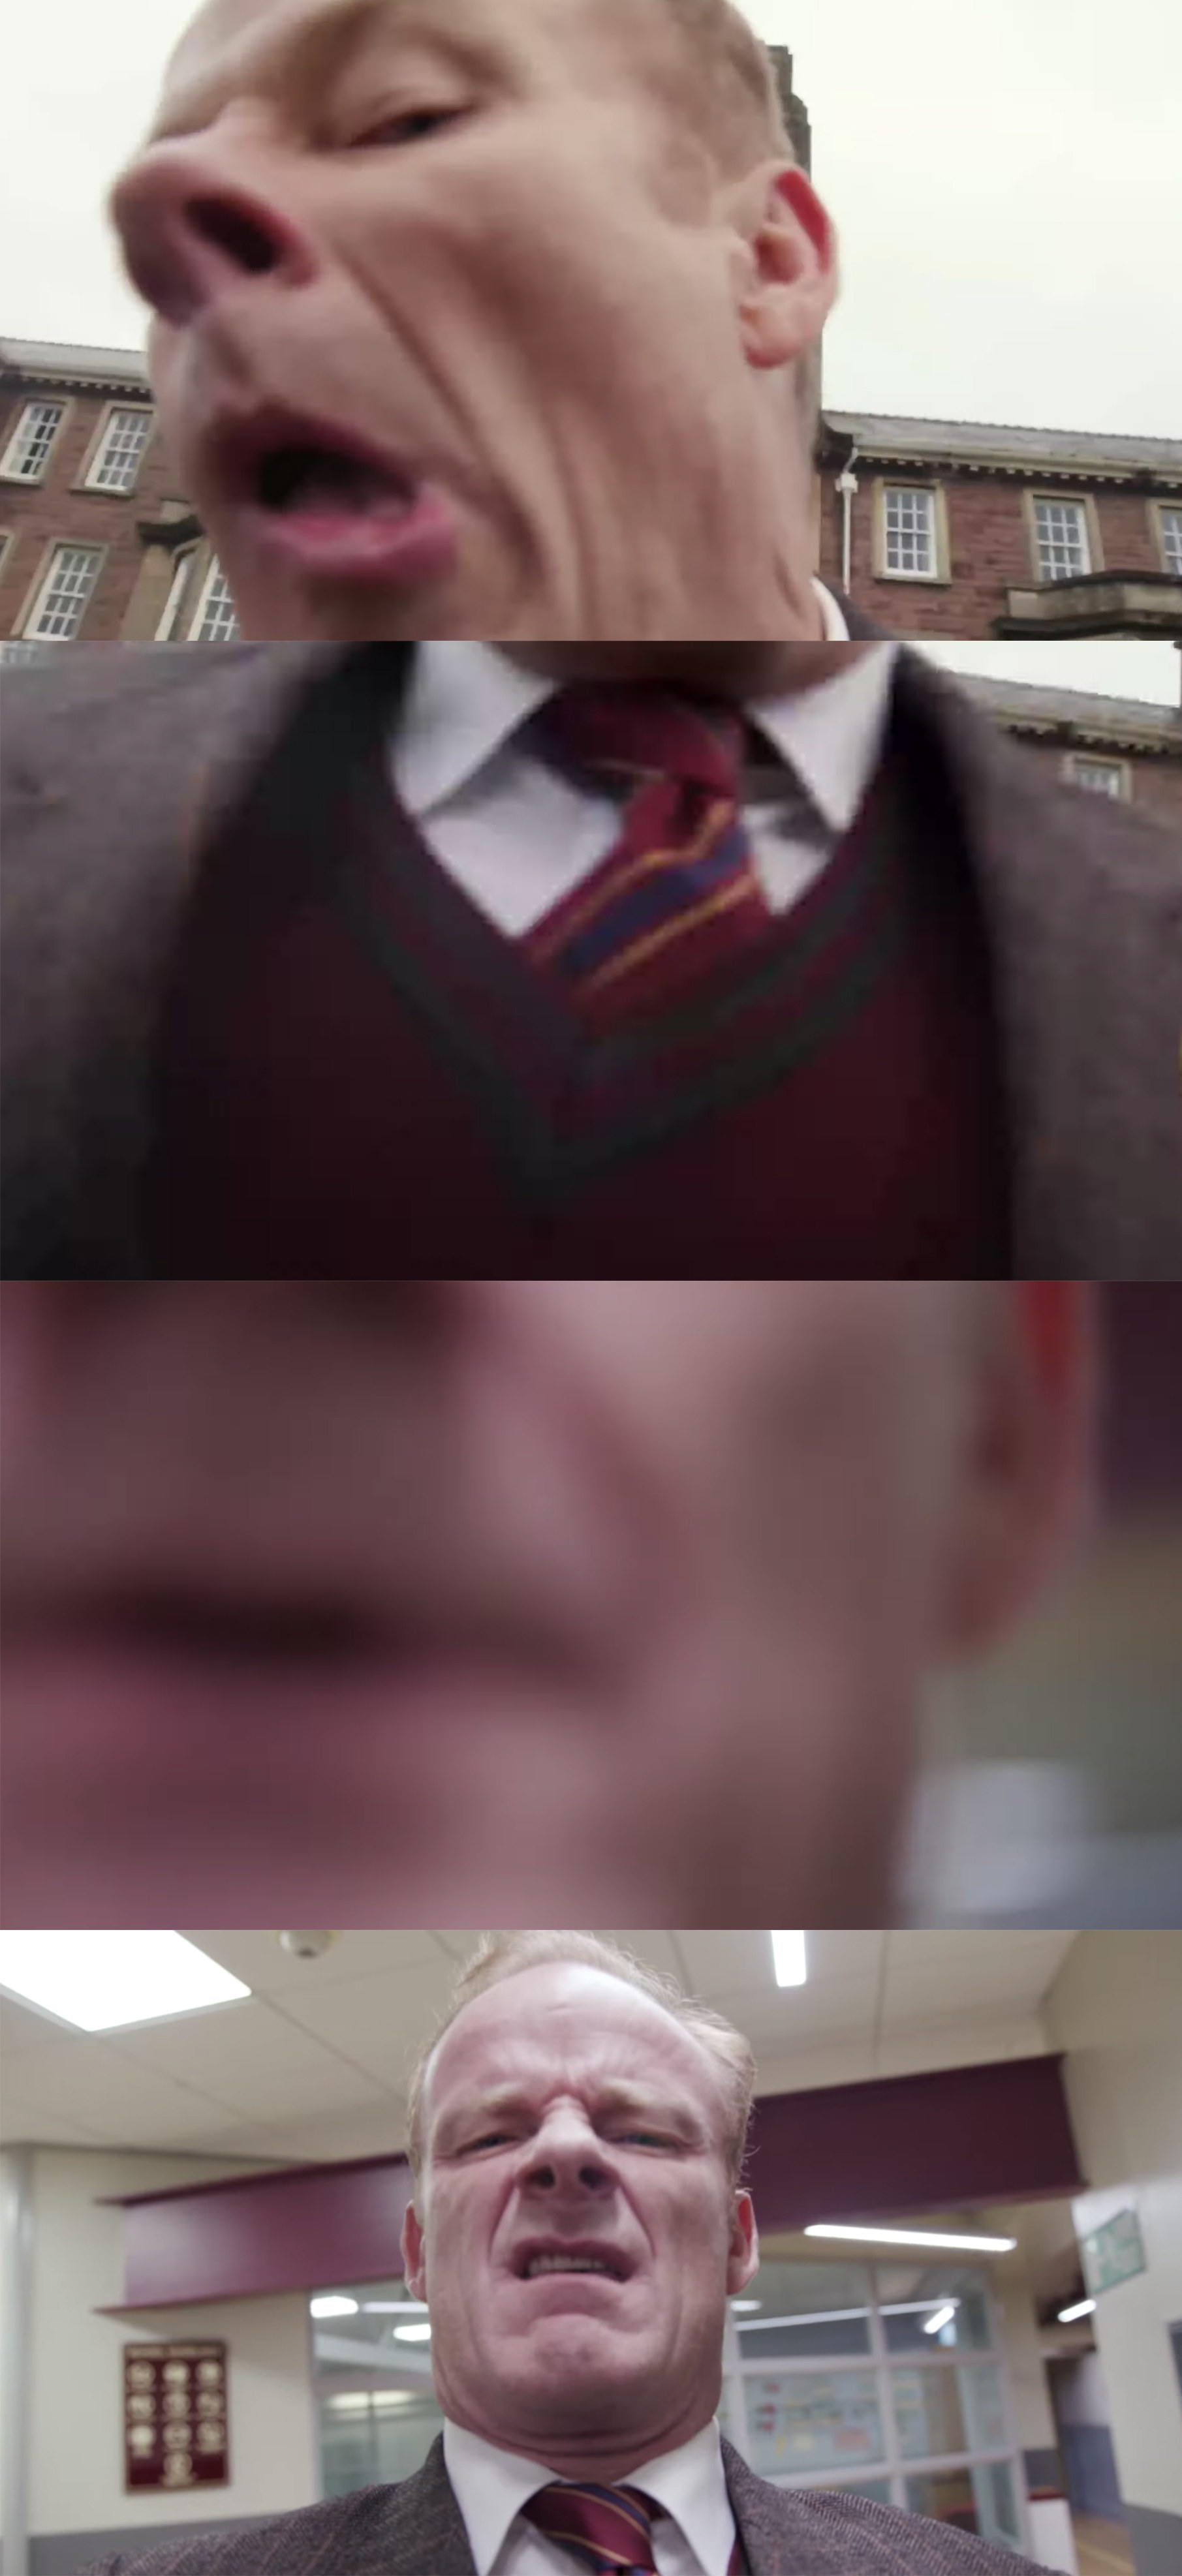 Alistair holds a camera and it's very zoomed in on his face and shirt.